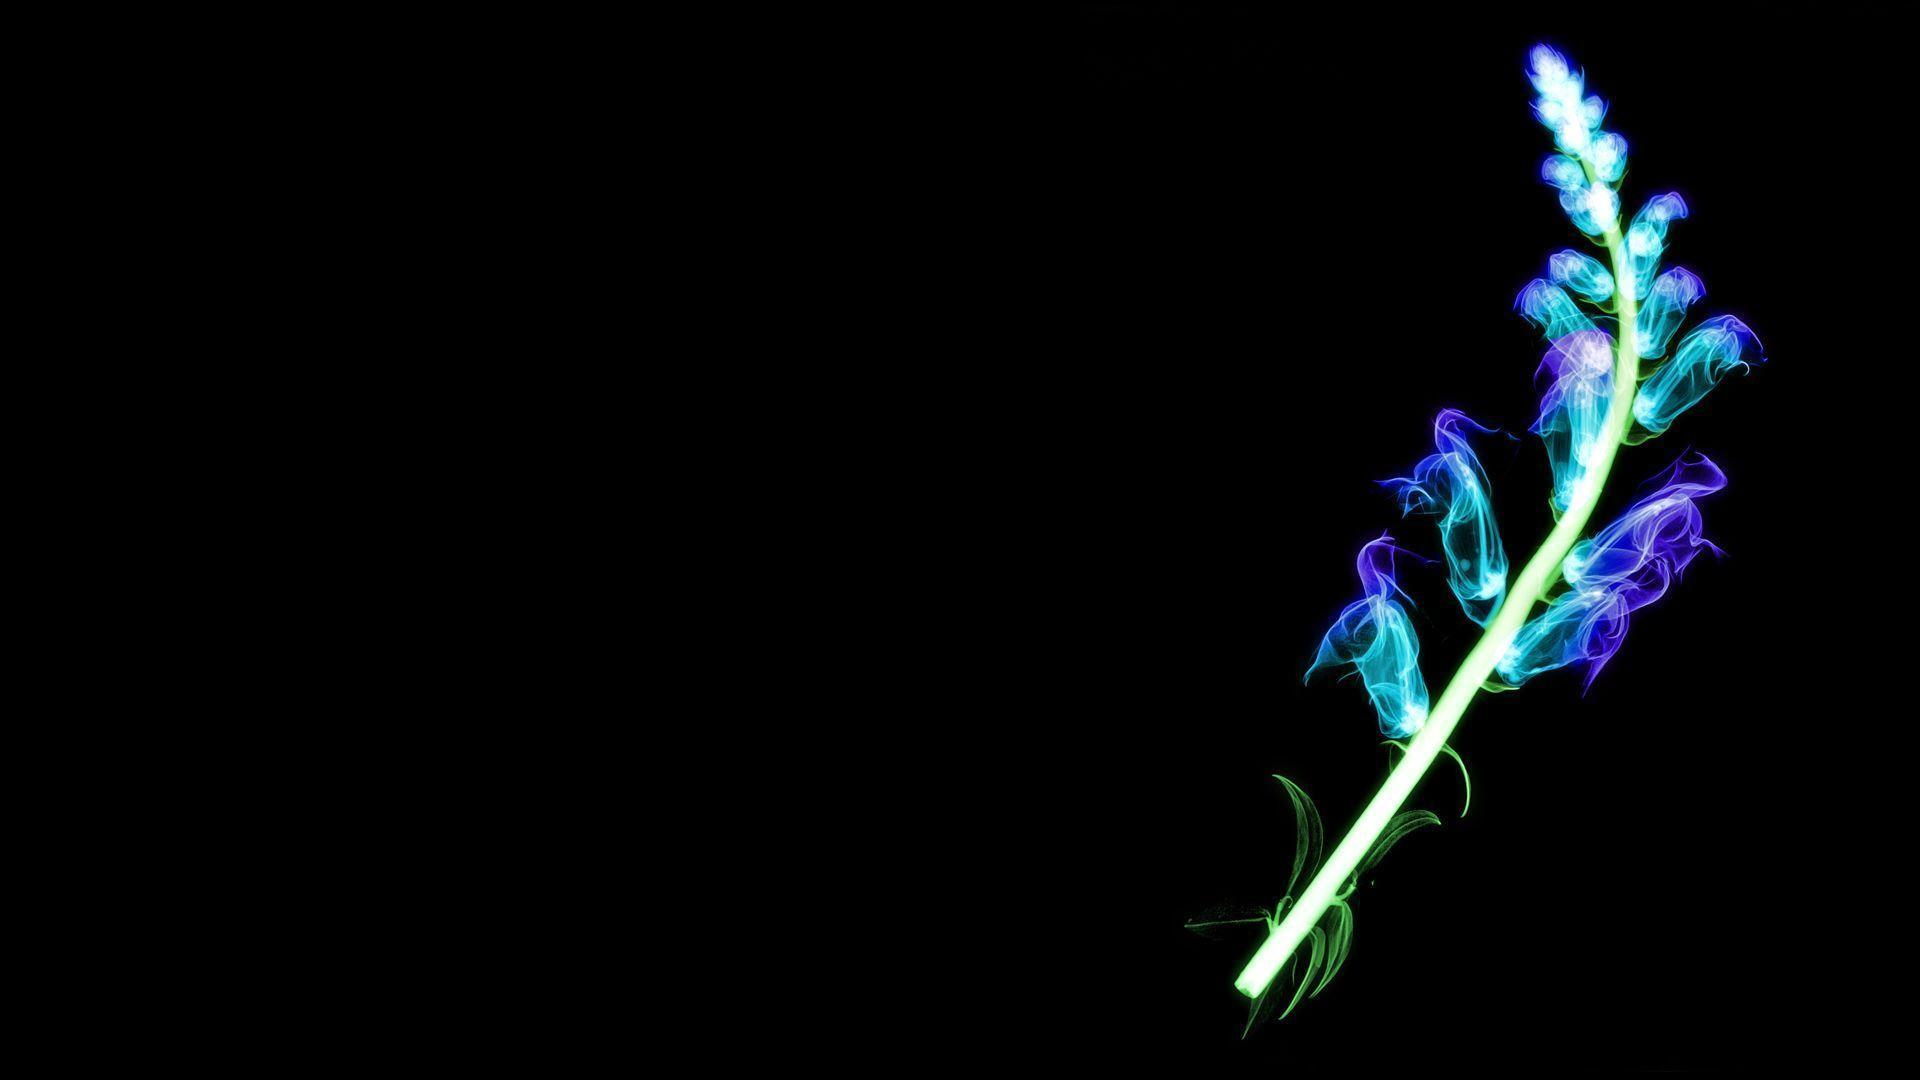 hd neon wallpapers - photo #21